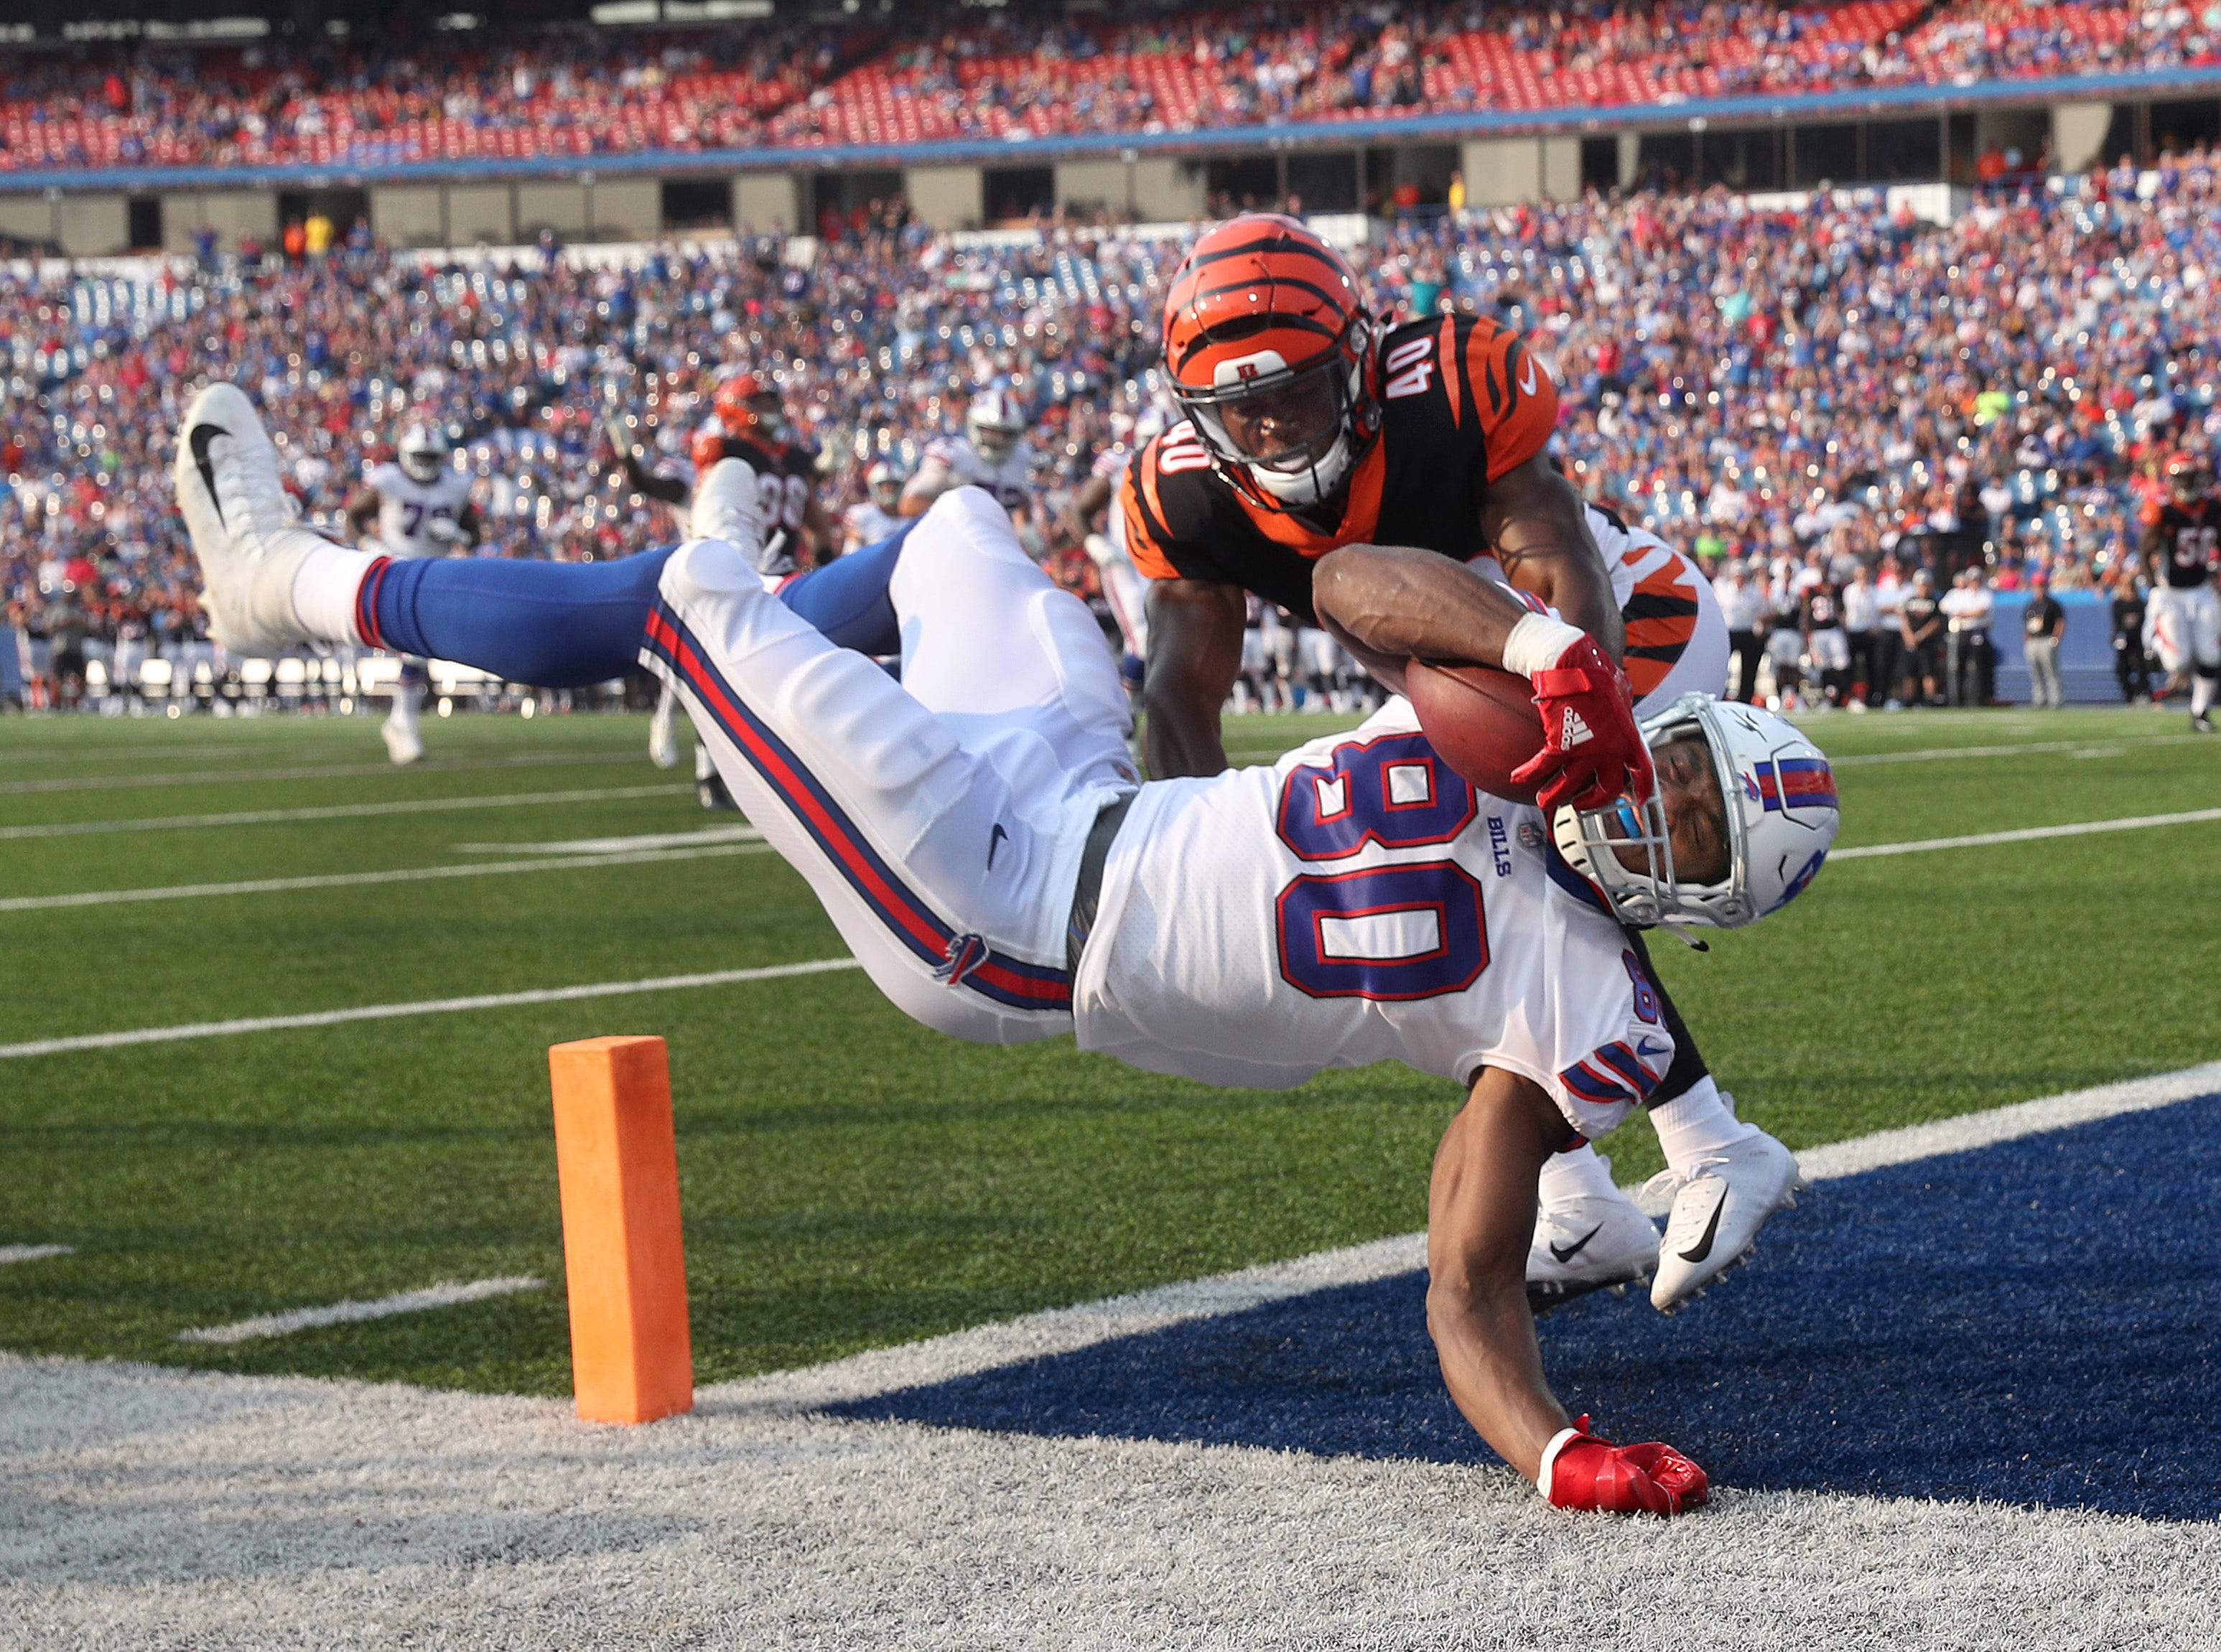 Bills tight end Jason Croom dives past Bengals Brandon Wilson to score on a 17 yard pass.